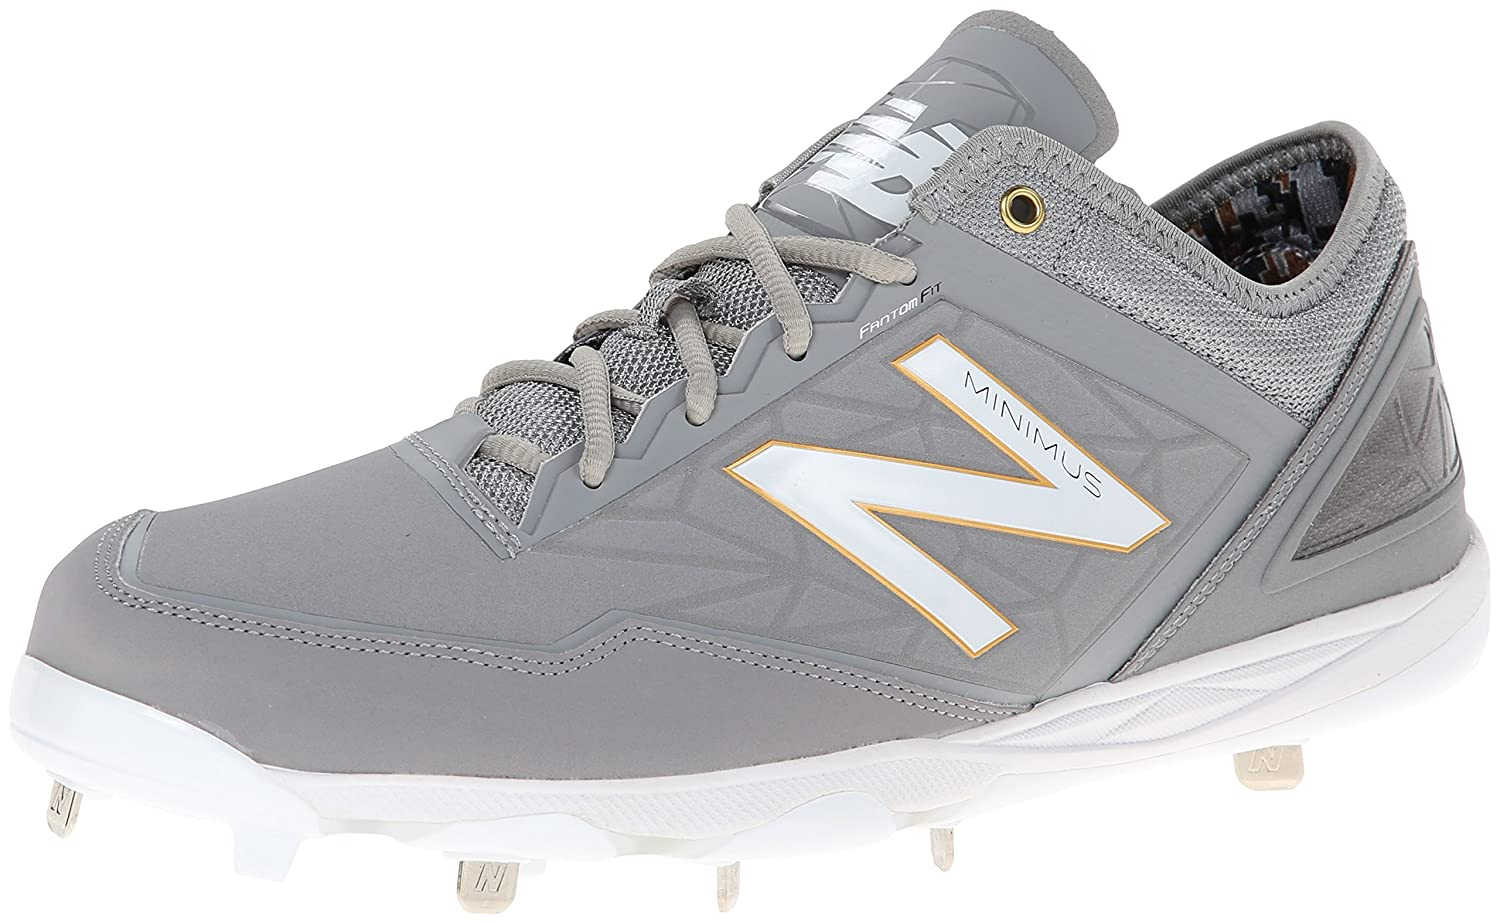 Baseball ShoeSchuhe Balance Men's Low New Mbb Minimus UMGzVpqLS